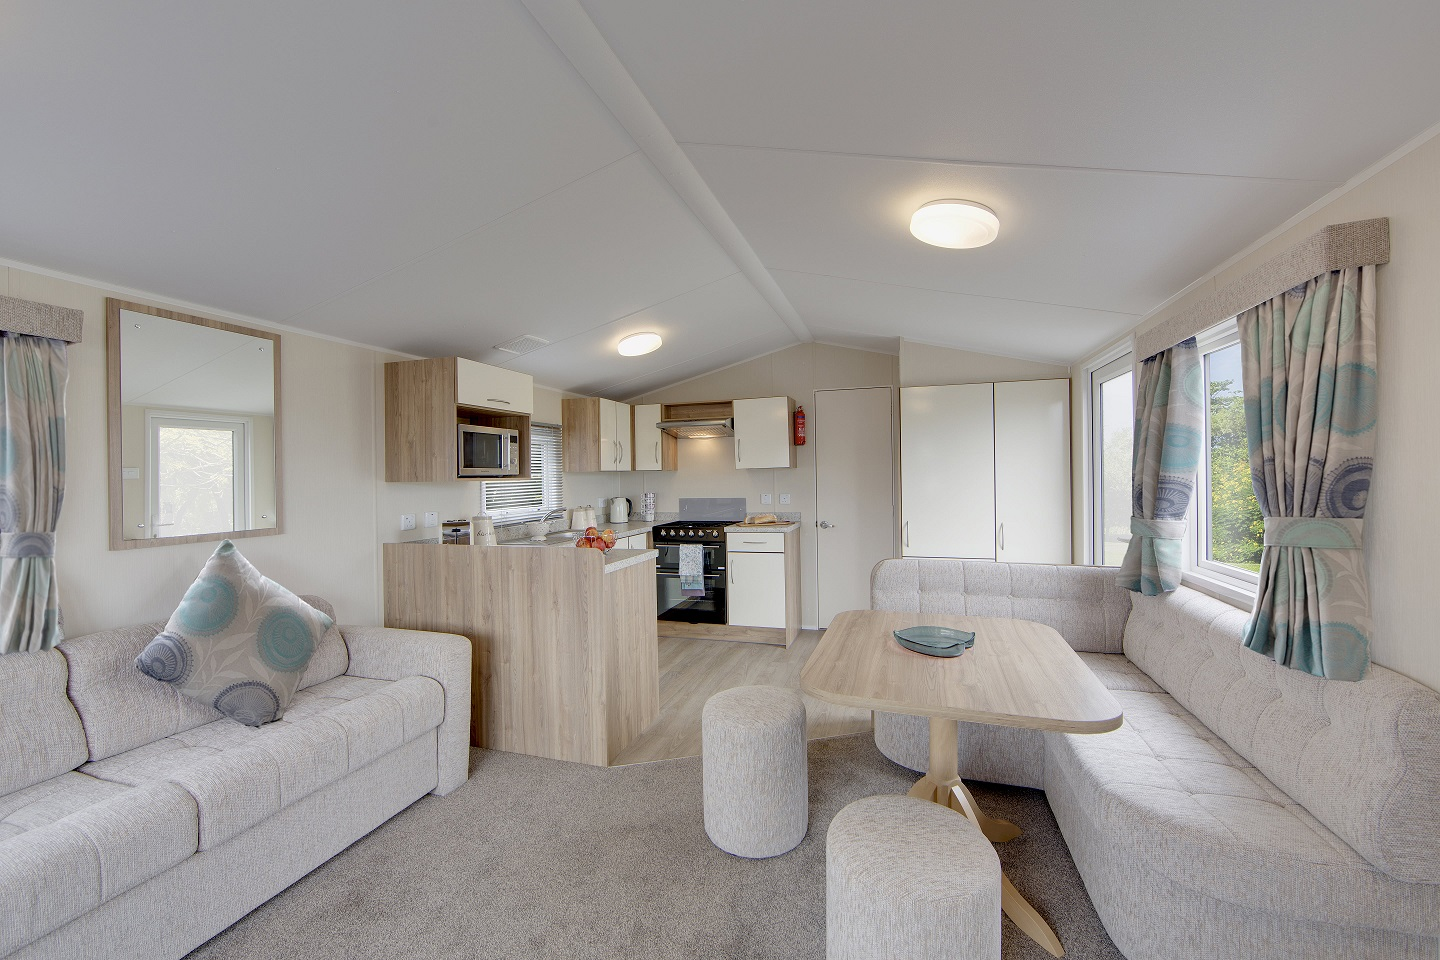 Willerby Rio Gold - 3 Bedrooms: New Static Caravans and Holiday Homes for Sale, Adderstone, Belford Large Image 2